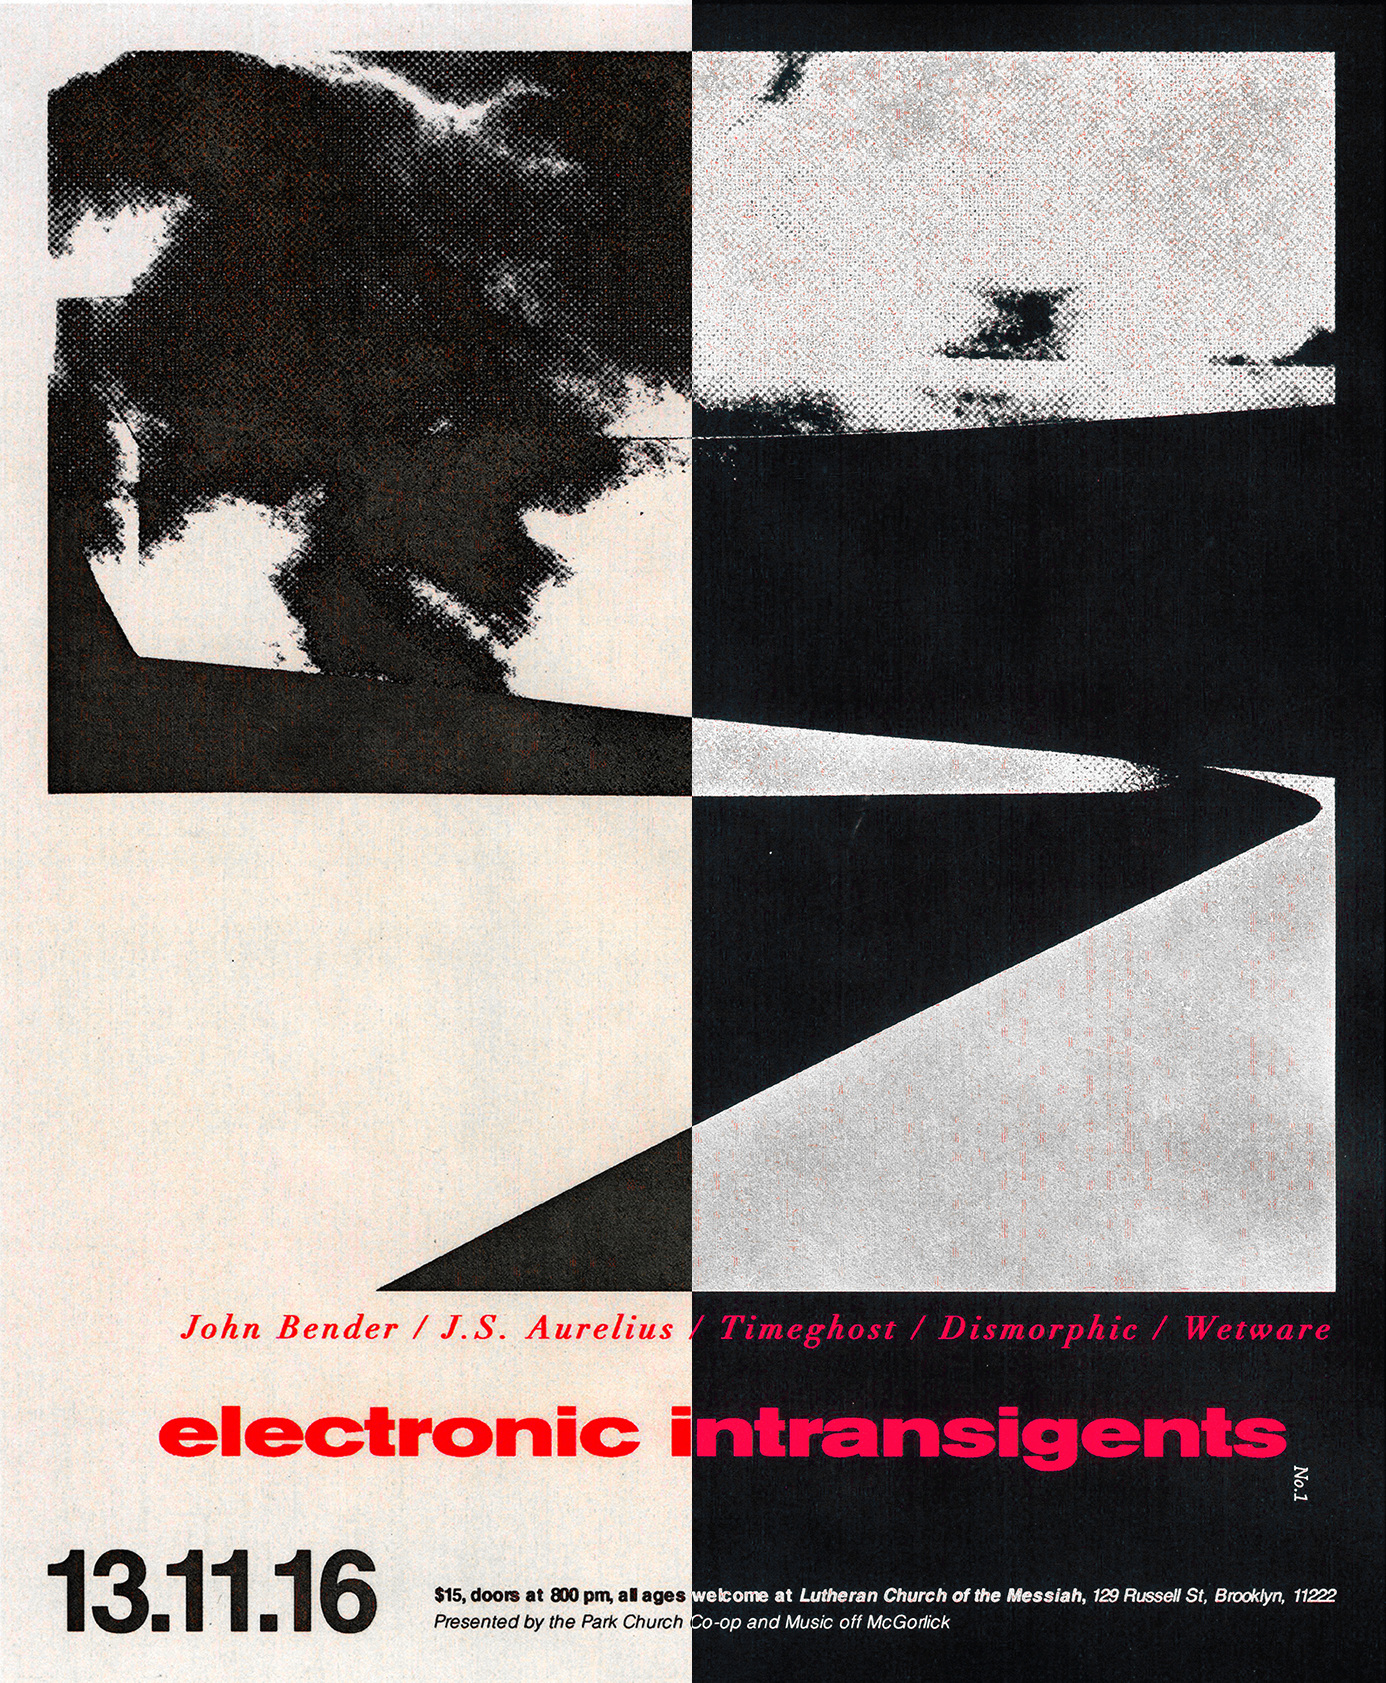 electronic-intransigents-no.1-half-web_1386.jpg